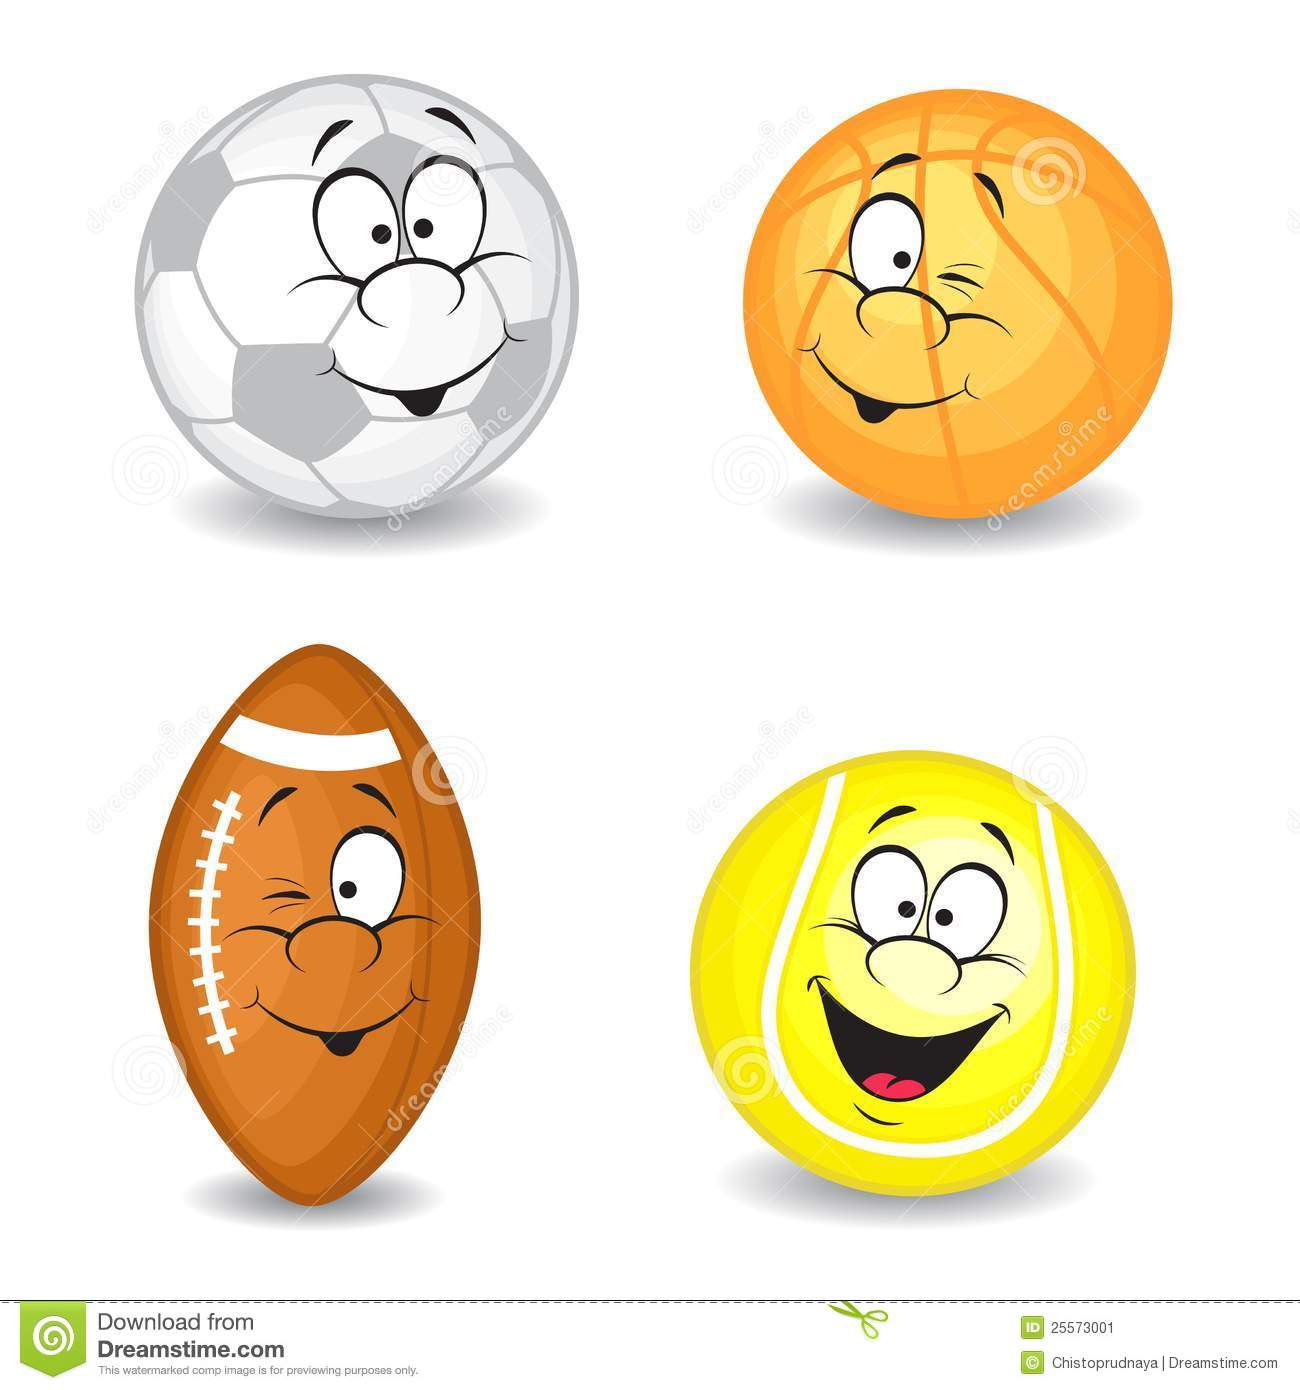 Cartoon Sport Balls Stock Image - Image: 25573001